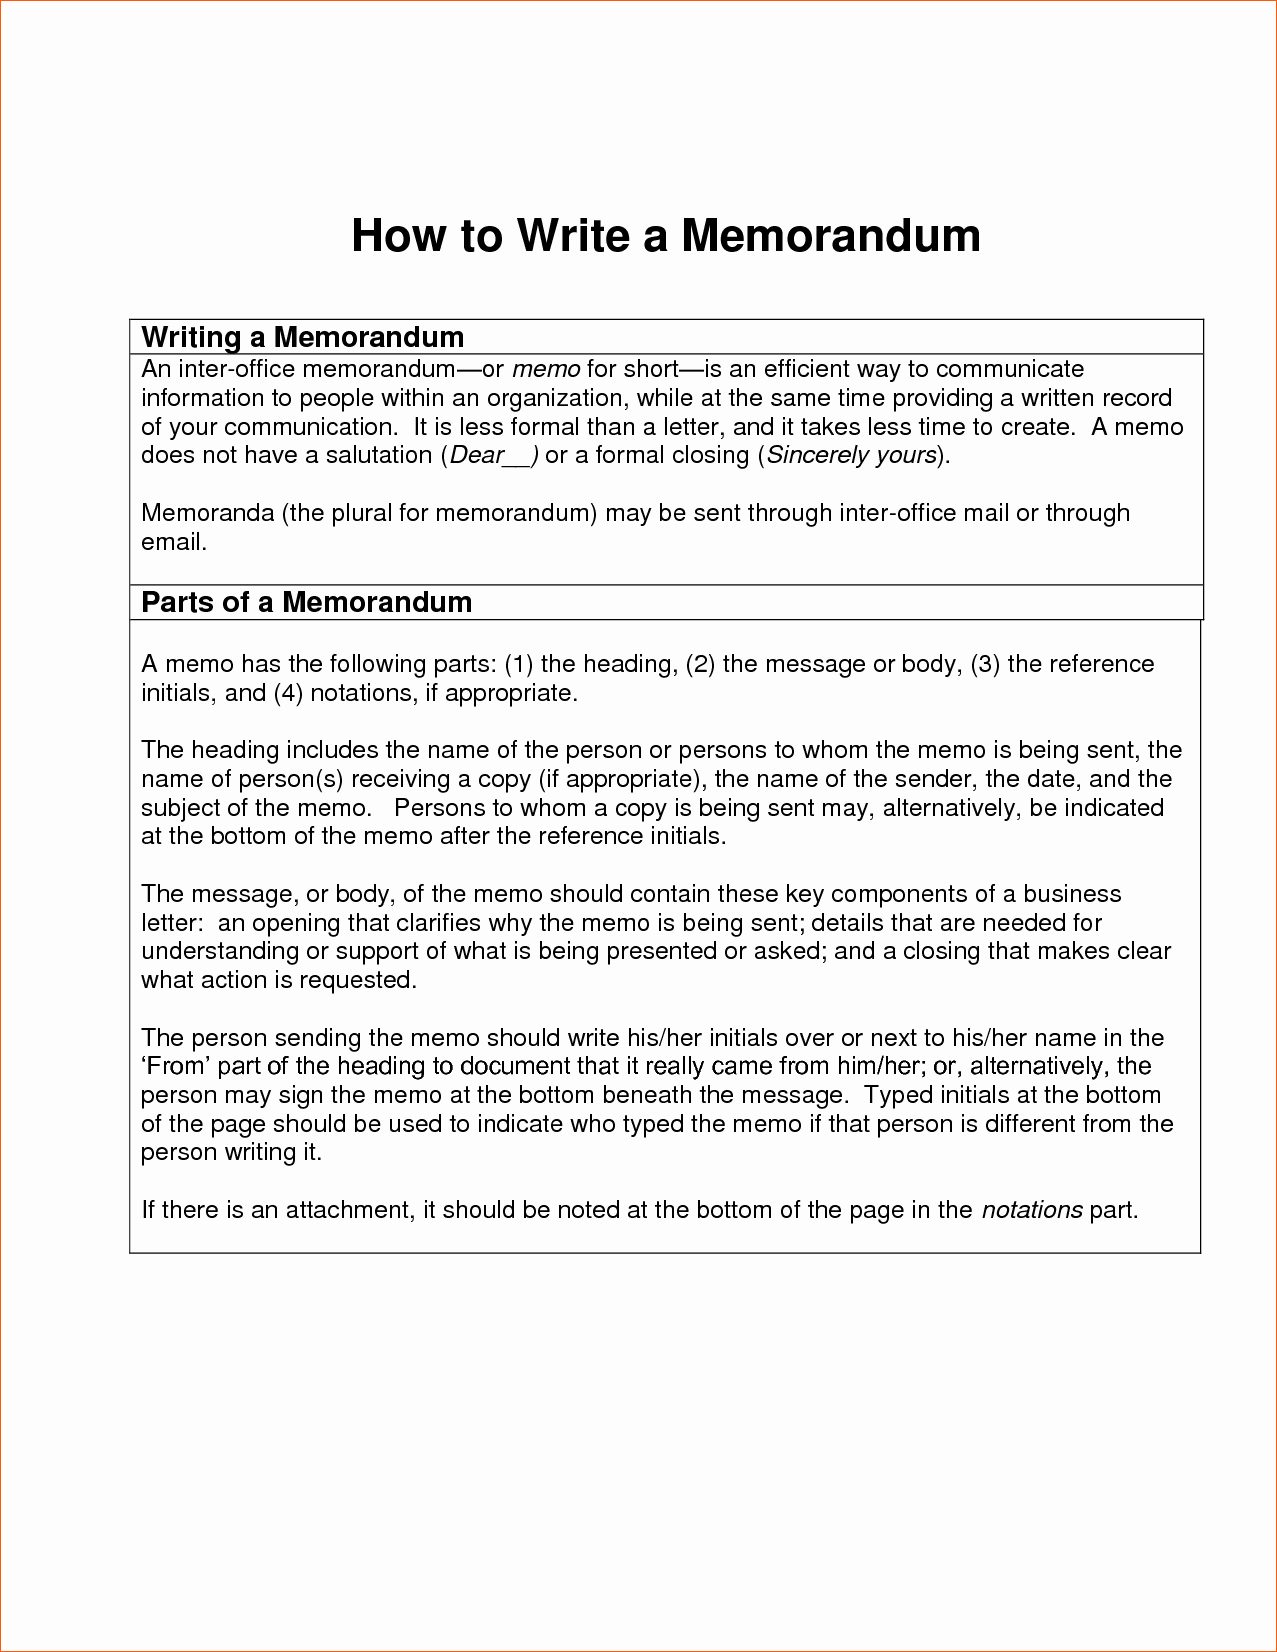 How to Draft A Memo Beautiful 10 How to Write A Memorandum